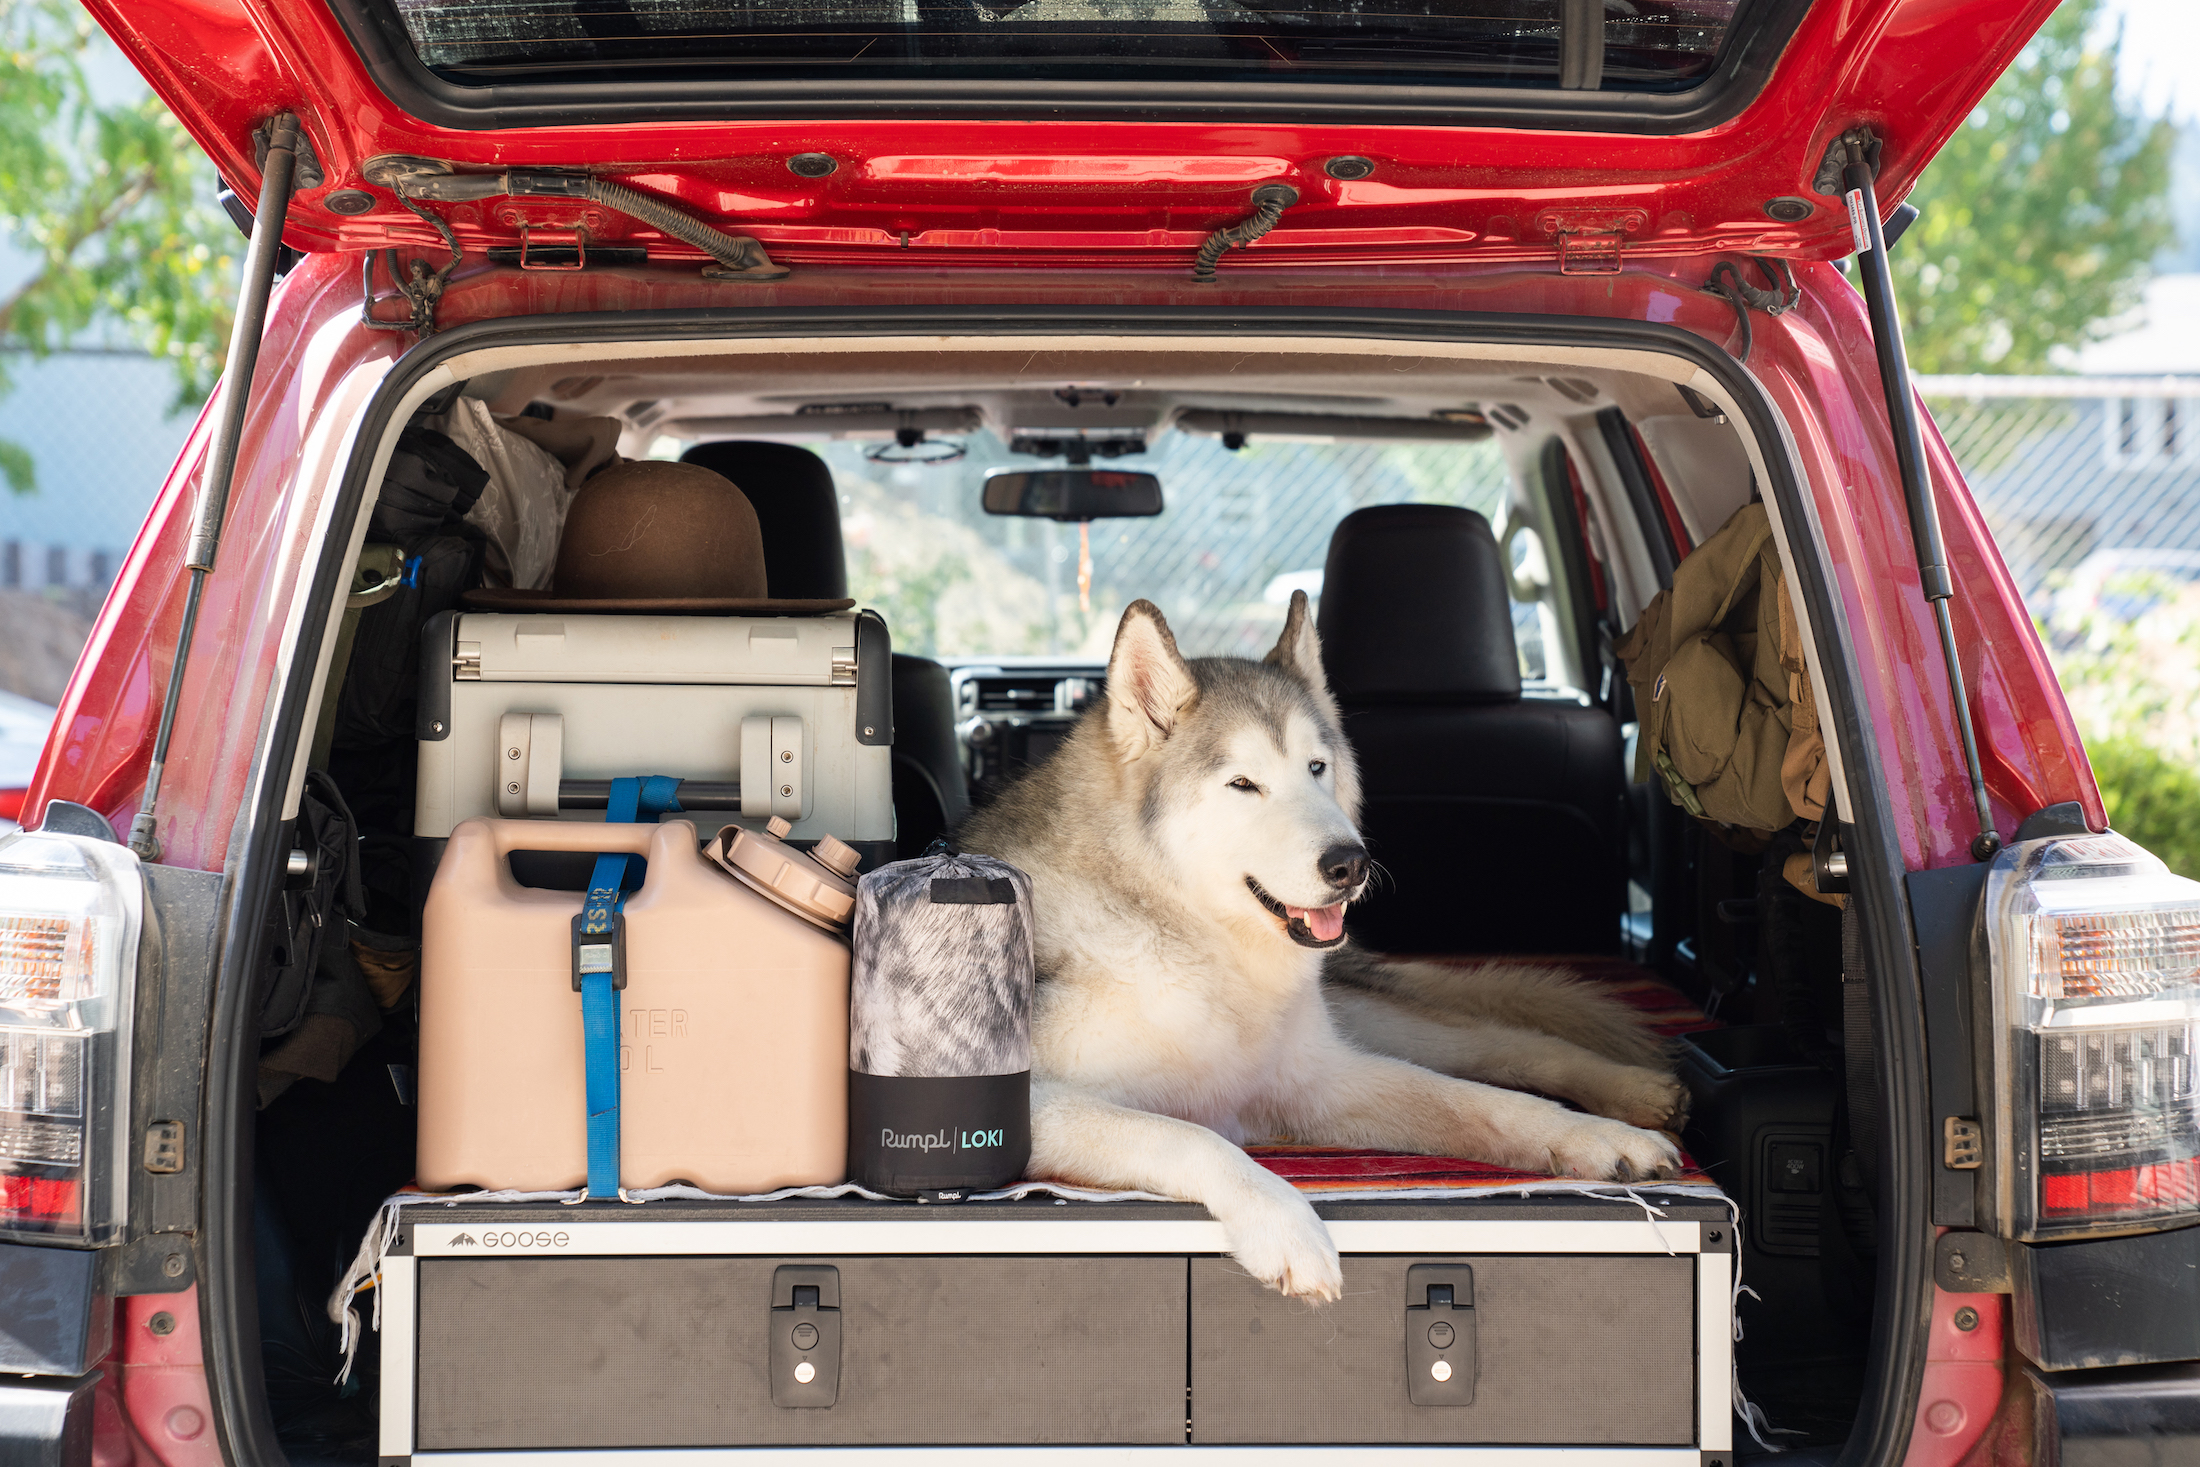 Rumpl dog blanket with Loki husky sitting in back of car with gear and trunk open